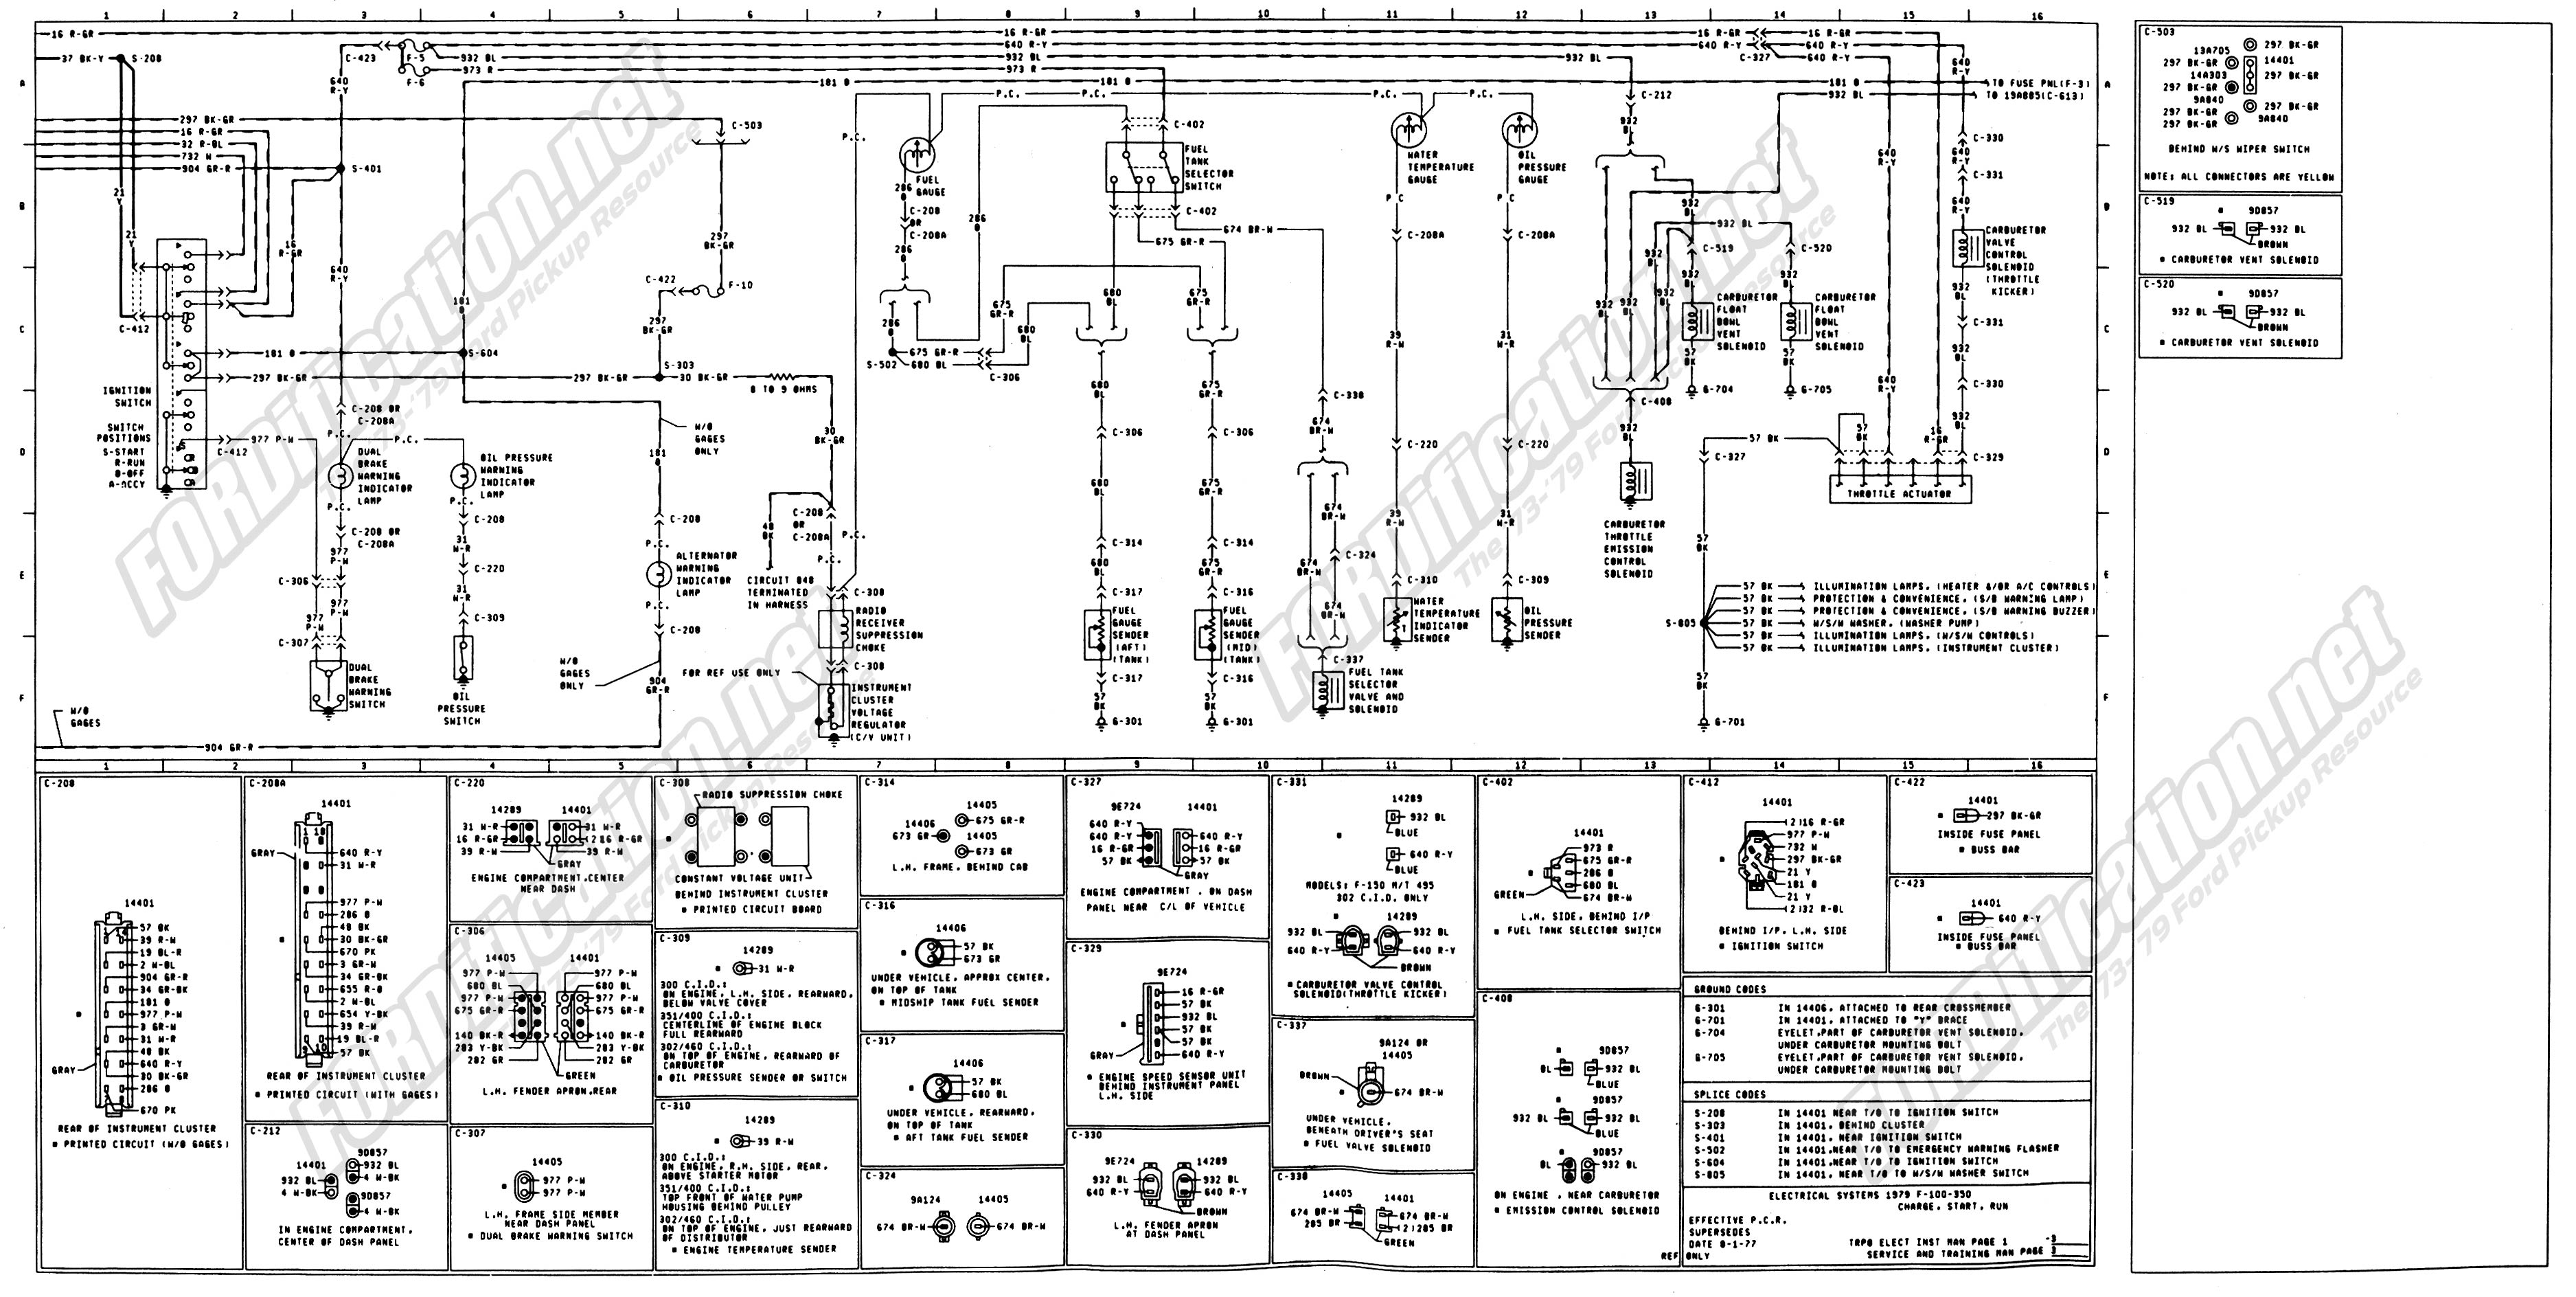 wiring_79master_3of9 1973 1979 ford truck wiring diagrams & schematics fordification net wiring diagrams for ford trucks at virtualis.co